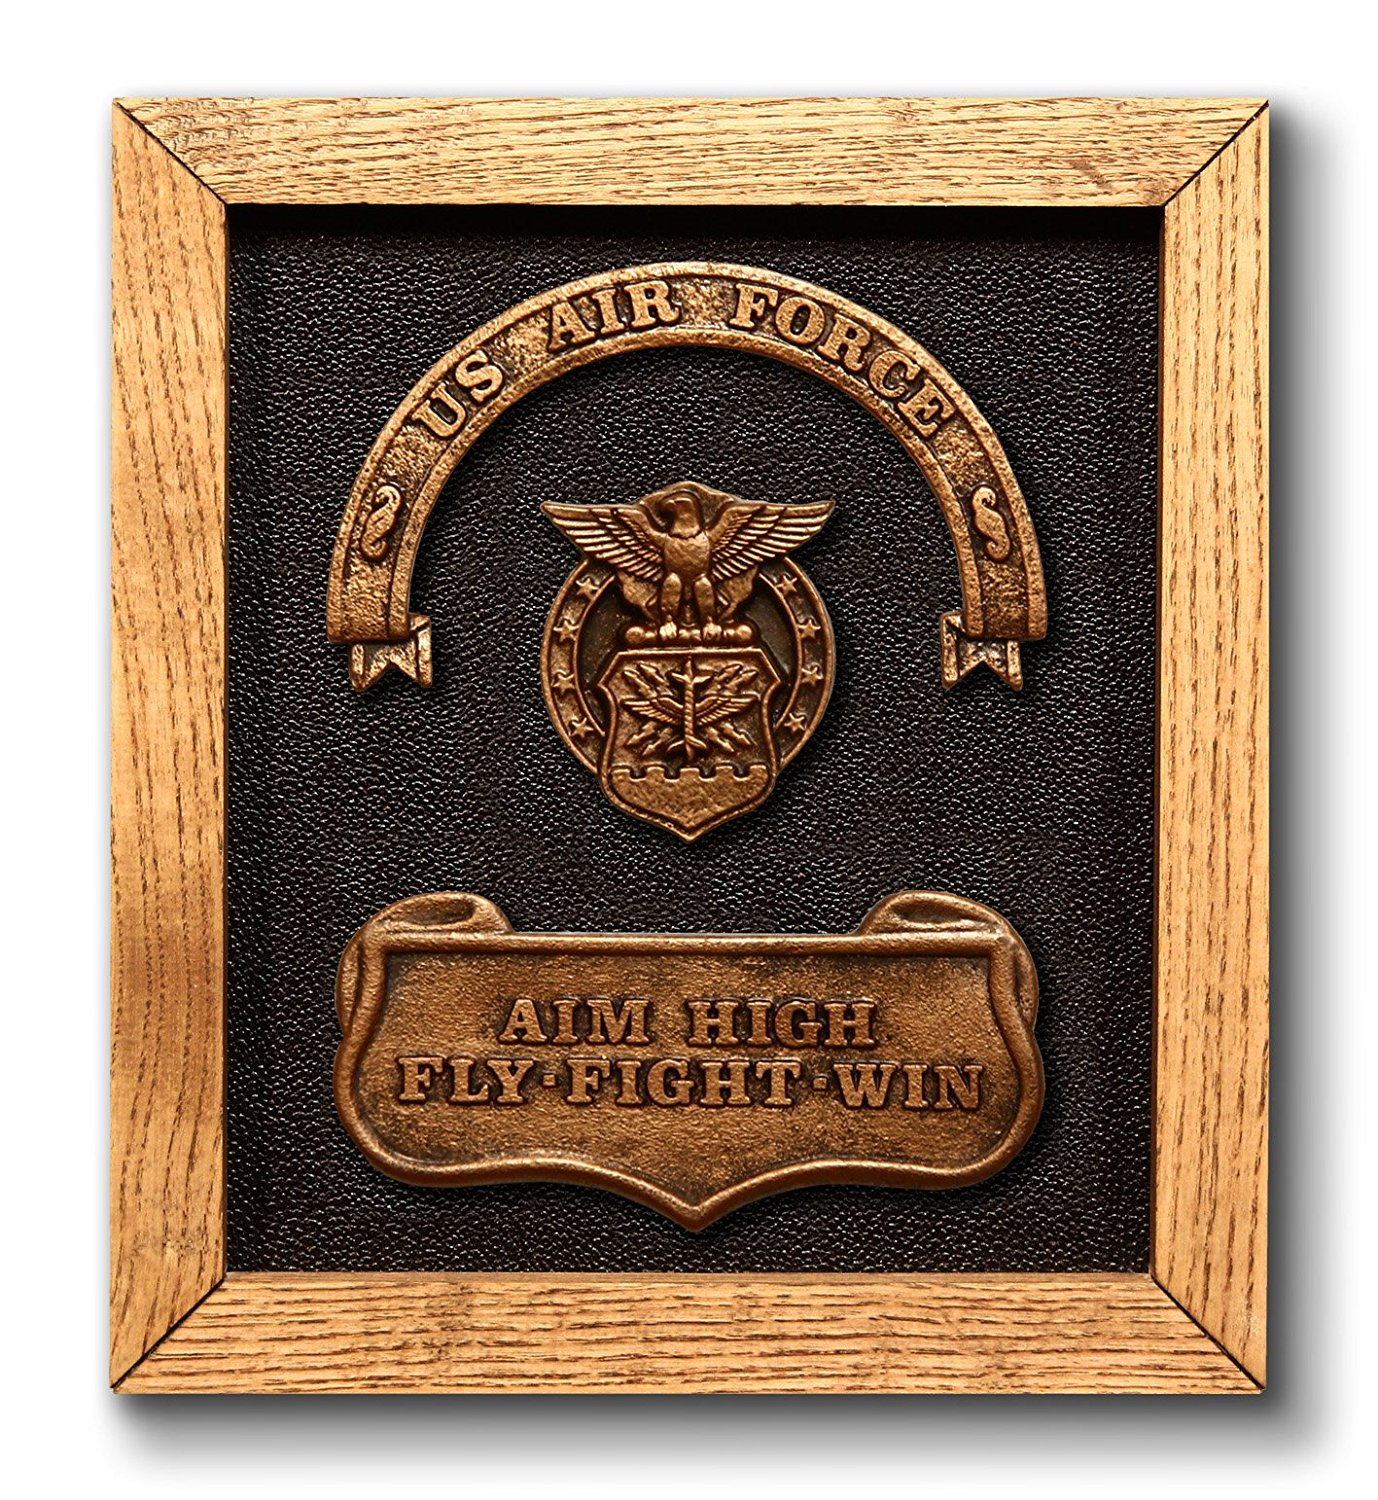 US Air Force Plaque - includes official United States Air Force badge & motto. Magnificent handmade military present or gift - Birthday / Fathers Day / Christmas etc